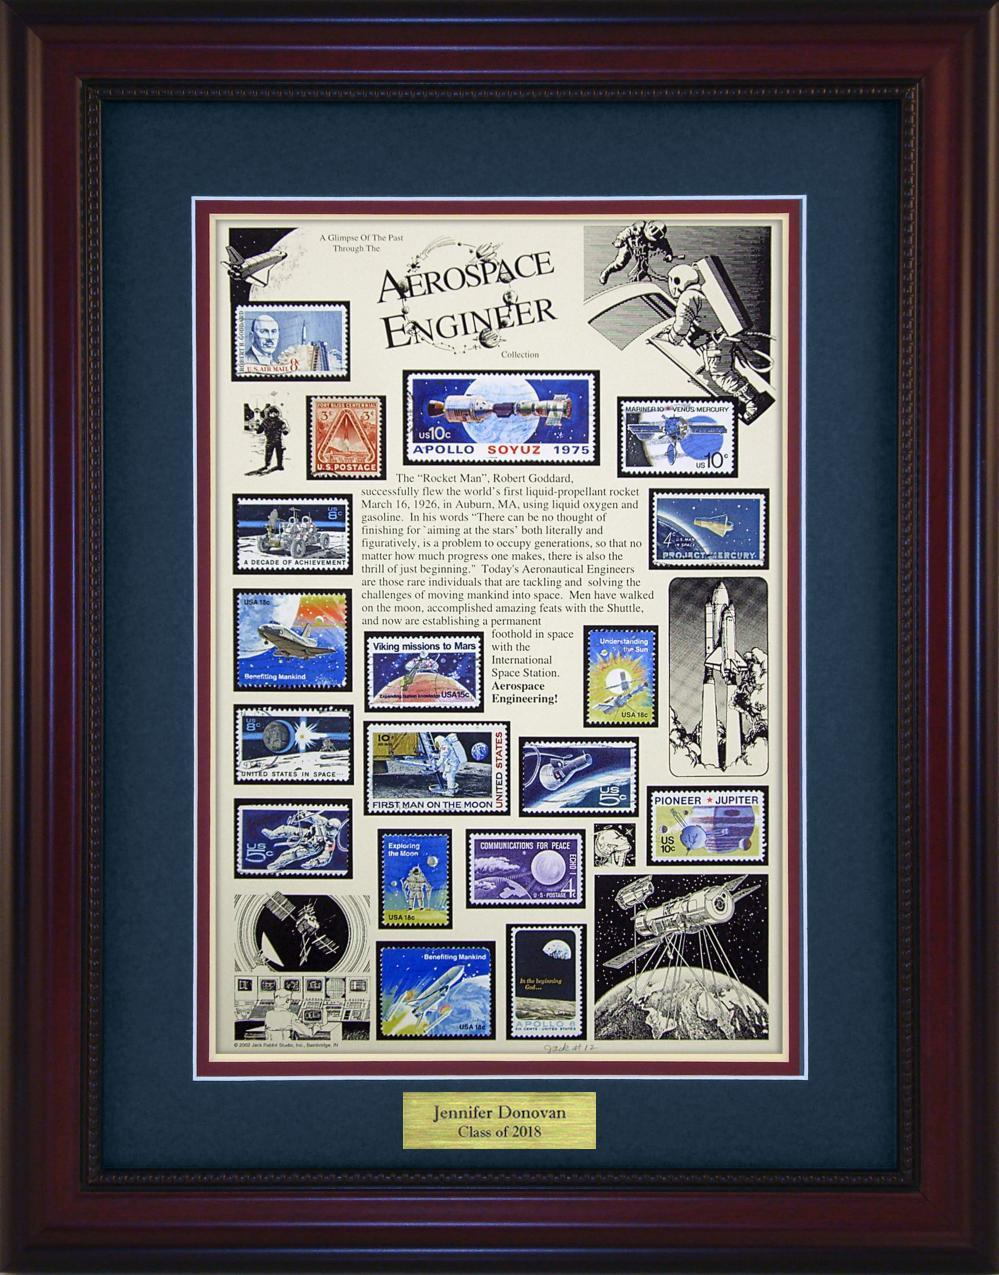 Aerospace Engineer - Personalized Unique Framed Gift